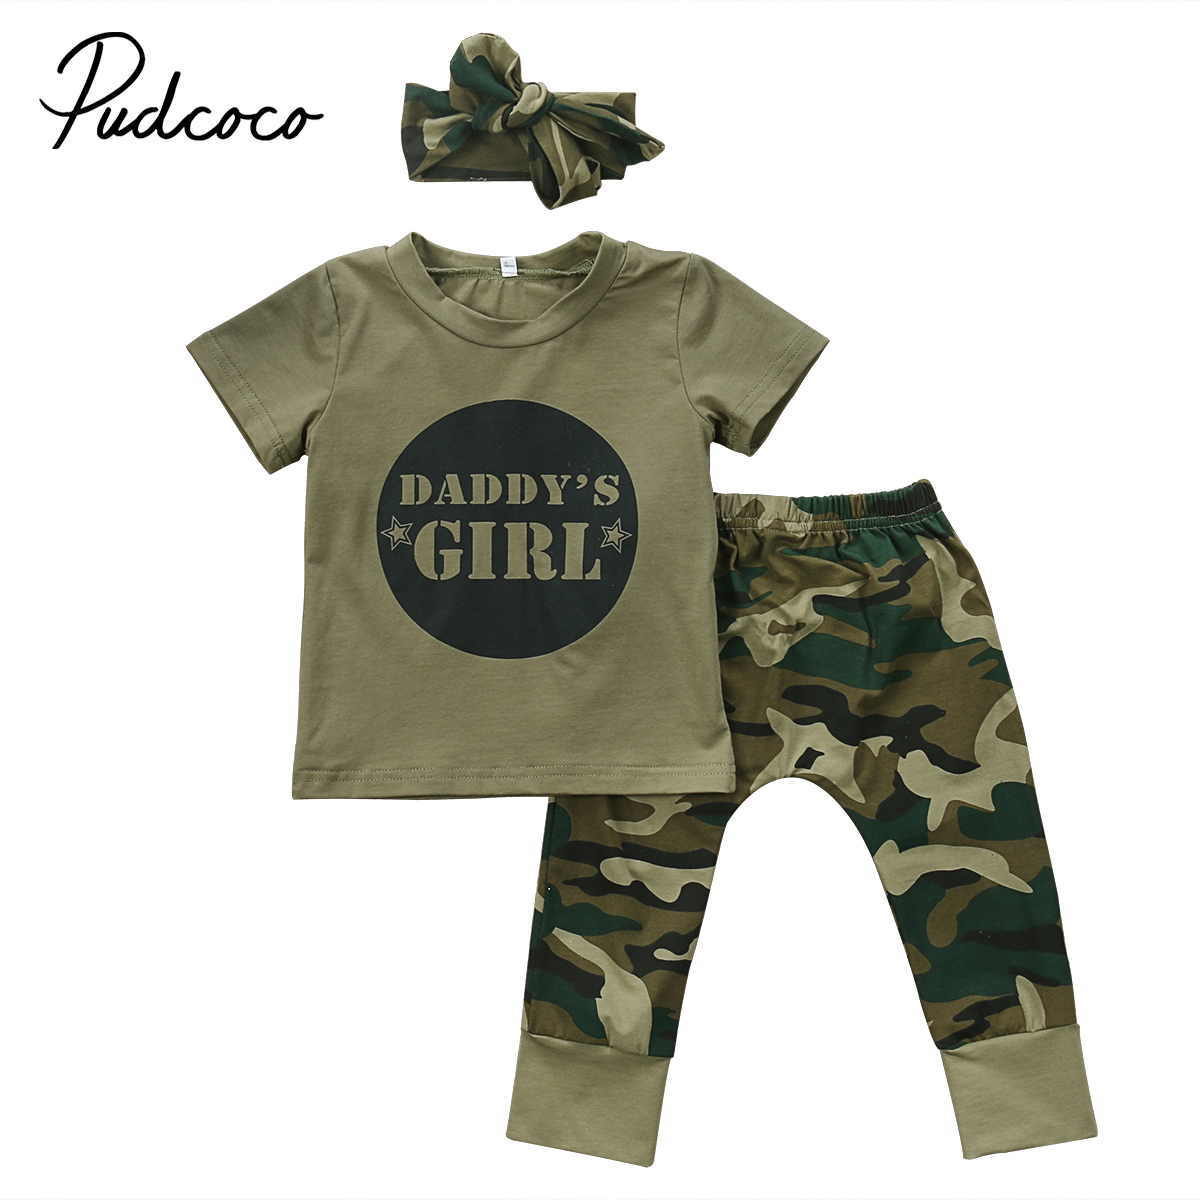 Summer Newborn Baby Boy Girls Camouflage T-shirt Tops+Pants Outfits Set Clothes Army Green Children Letters Print Clothing 0-24M hot sale 2016 kids boys girls summer tops baby t shirts fashion leaf print sleeveless kniting tee baby clothes children t shirt